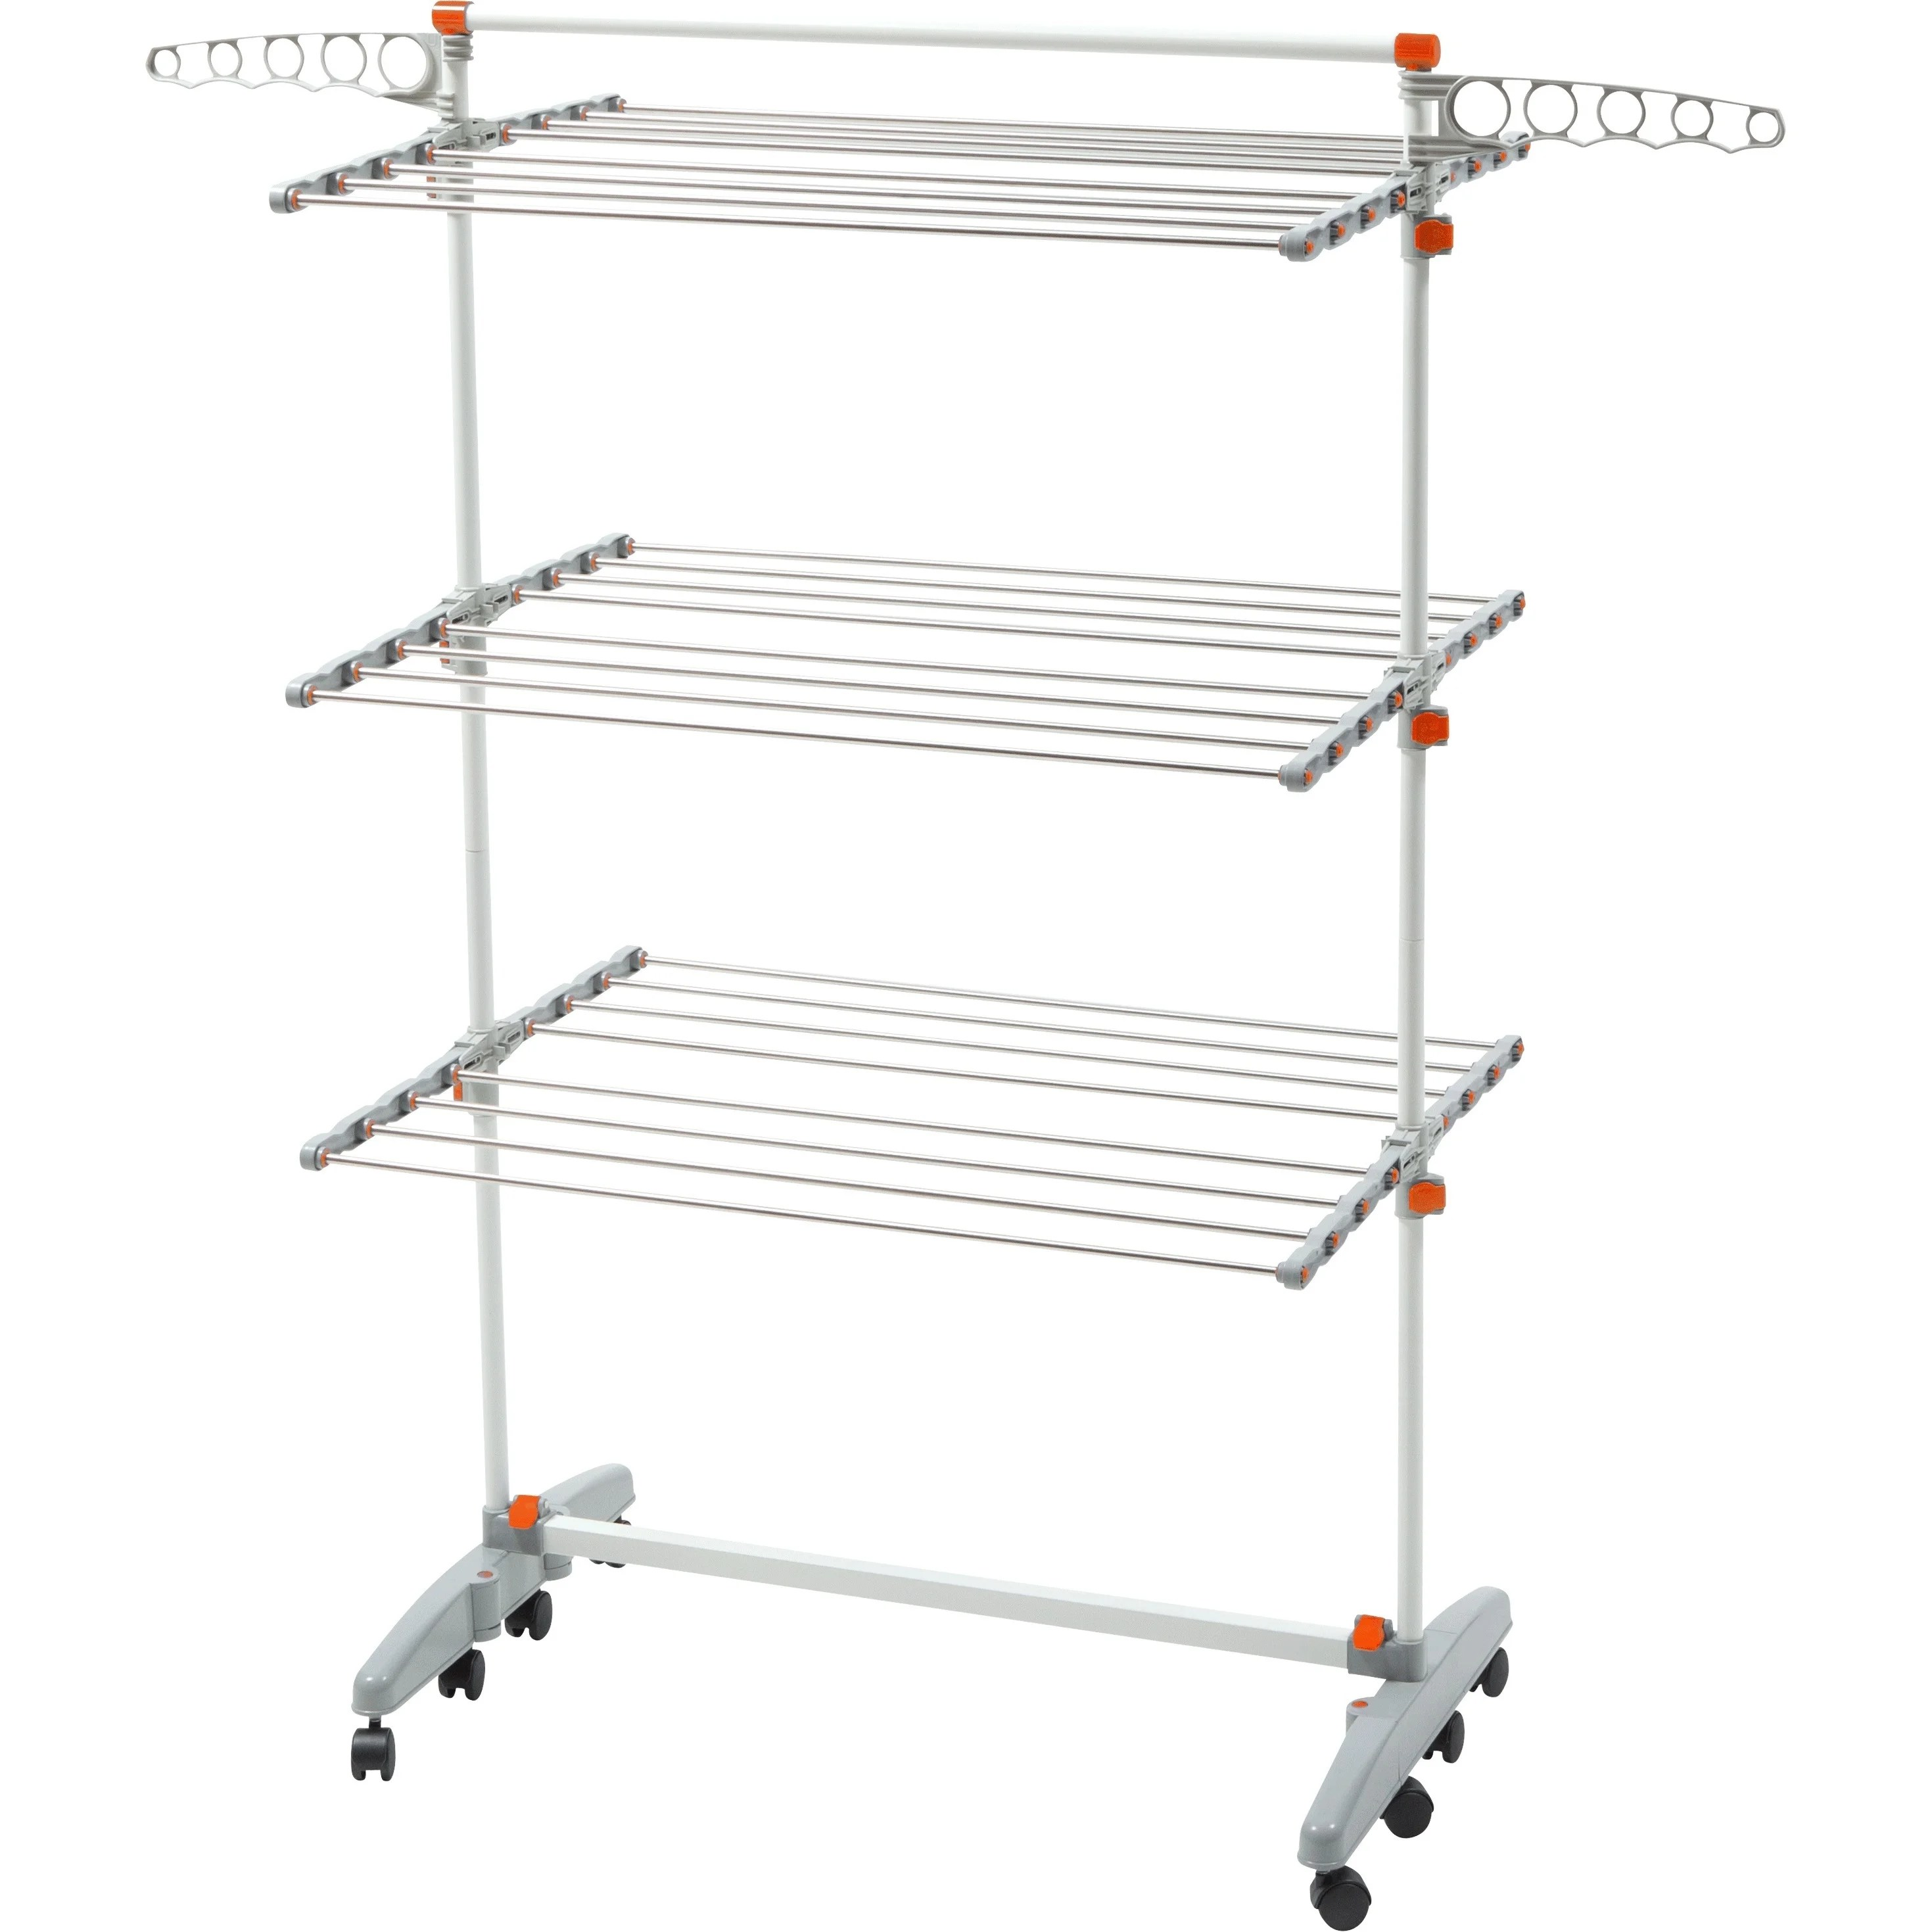 idee bdp v23 premium foldable 8 wheeled clothes laundry drying rack with stainless steel hanging rods